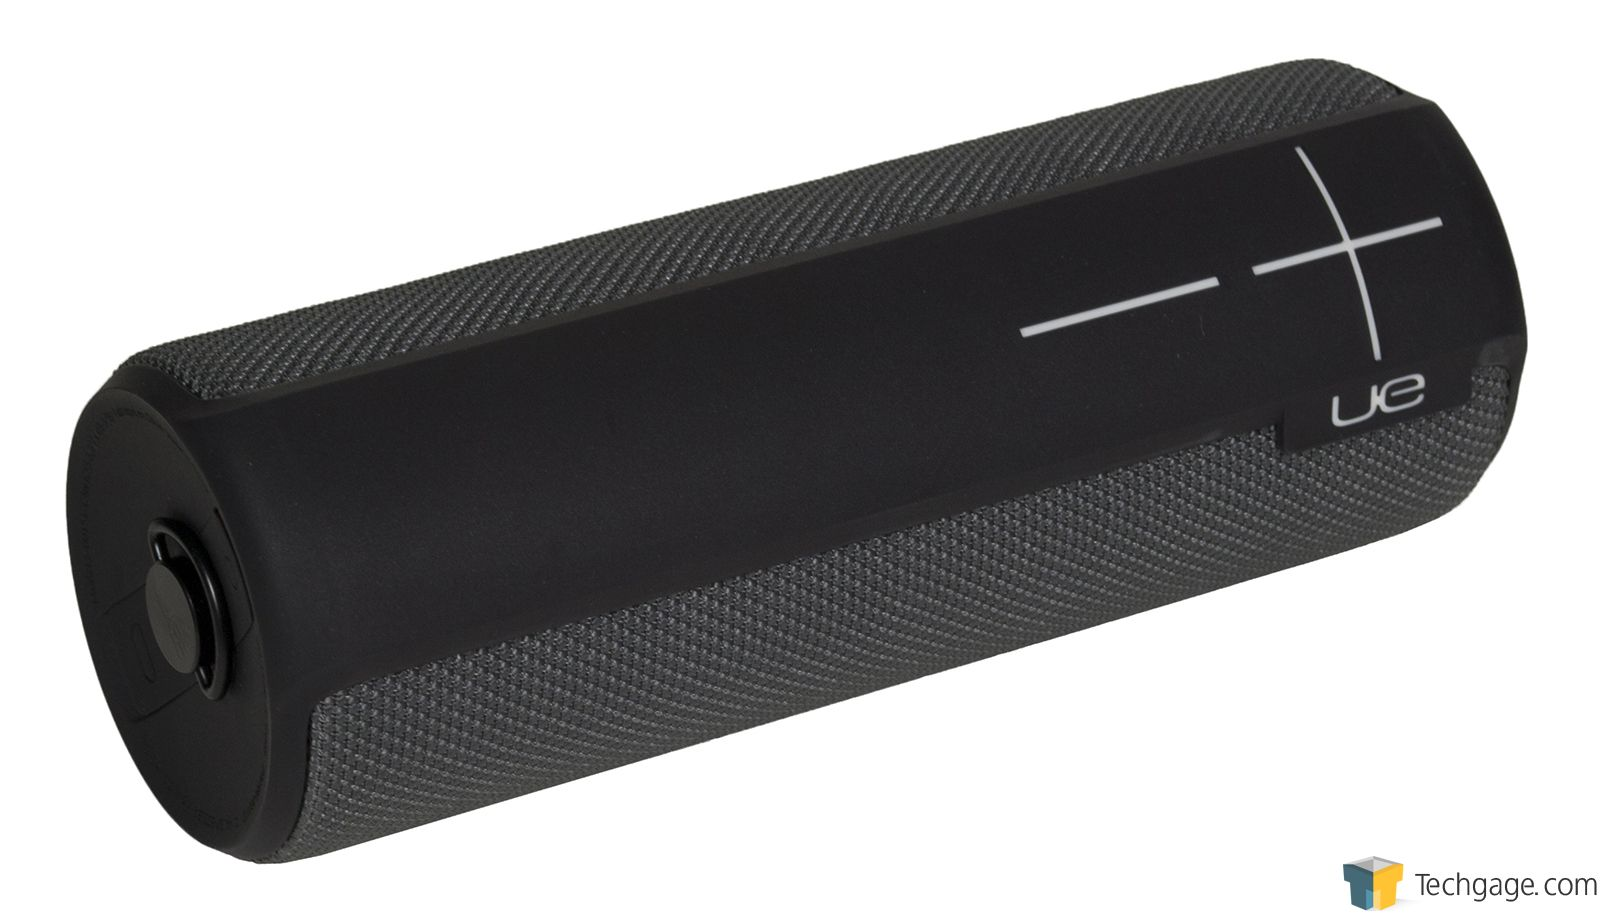 Ultimate ears boom 2 wireless speaker review techgage for Interieur ue boom 2